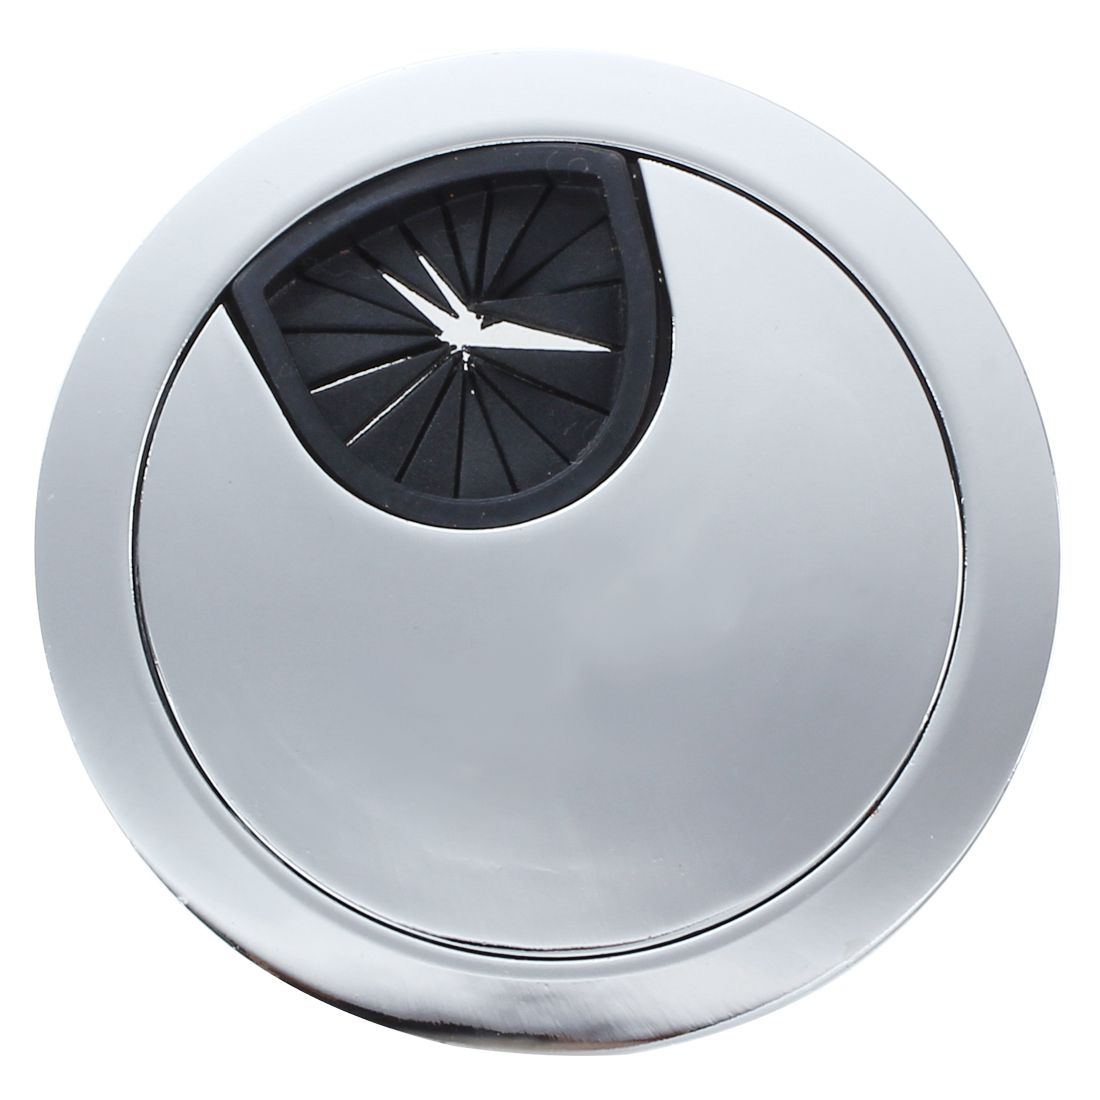 HOT GCZW-Computer Desktop 50mm Diameter Round Stainless Steel Cable Hole Cover Cap hot gczw 12 pcs 8mm inner diameter round